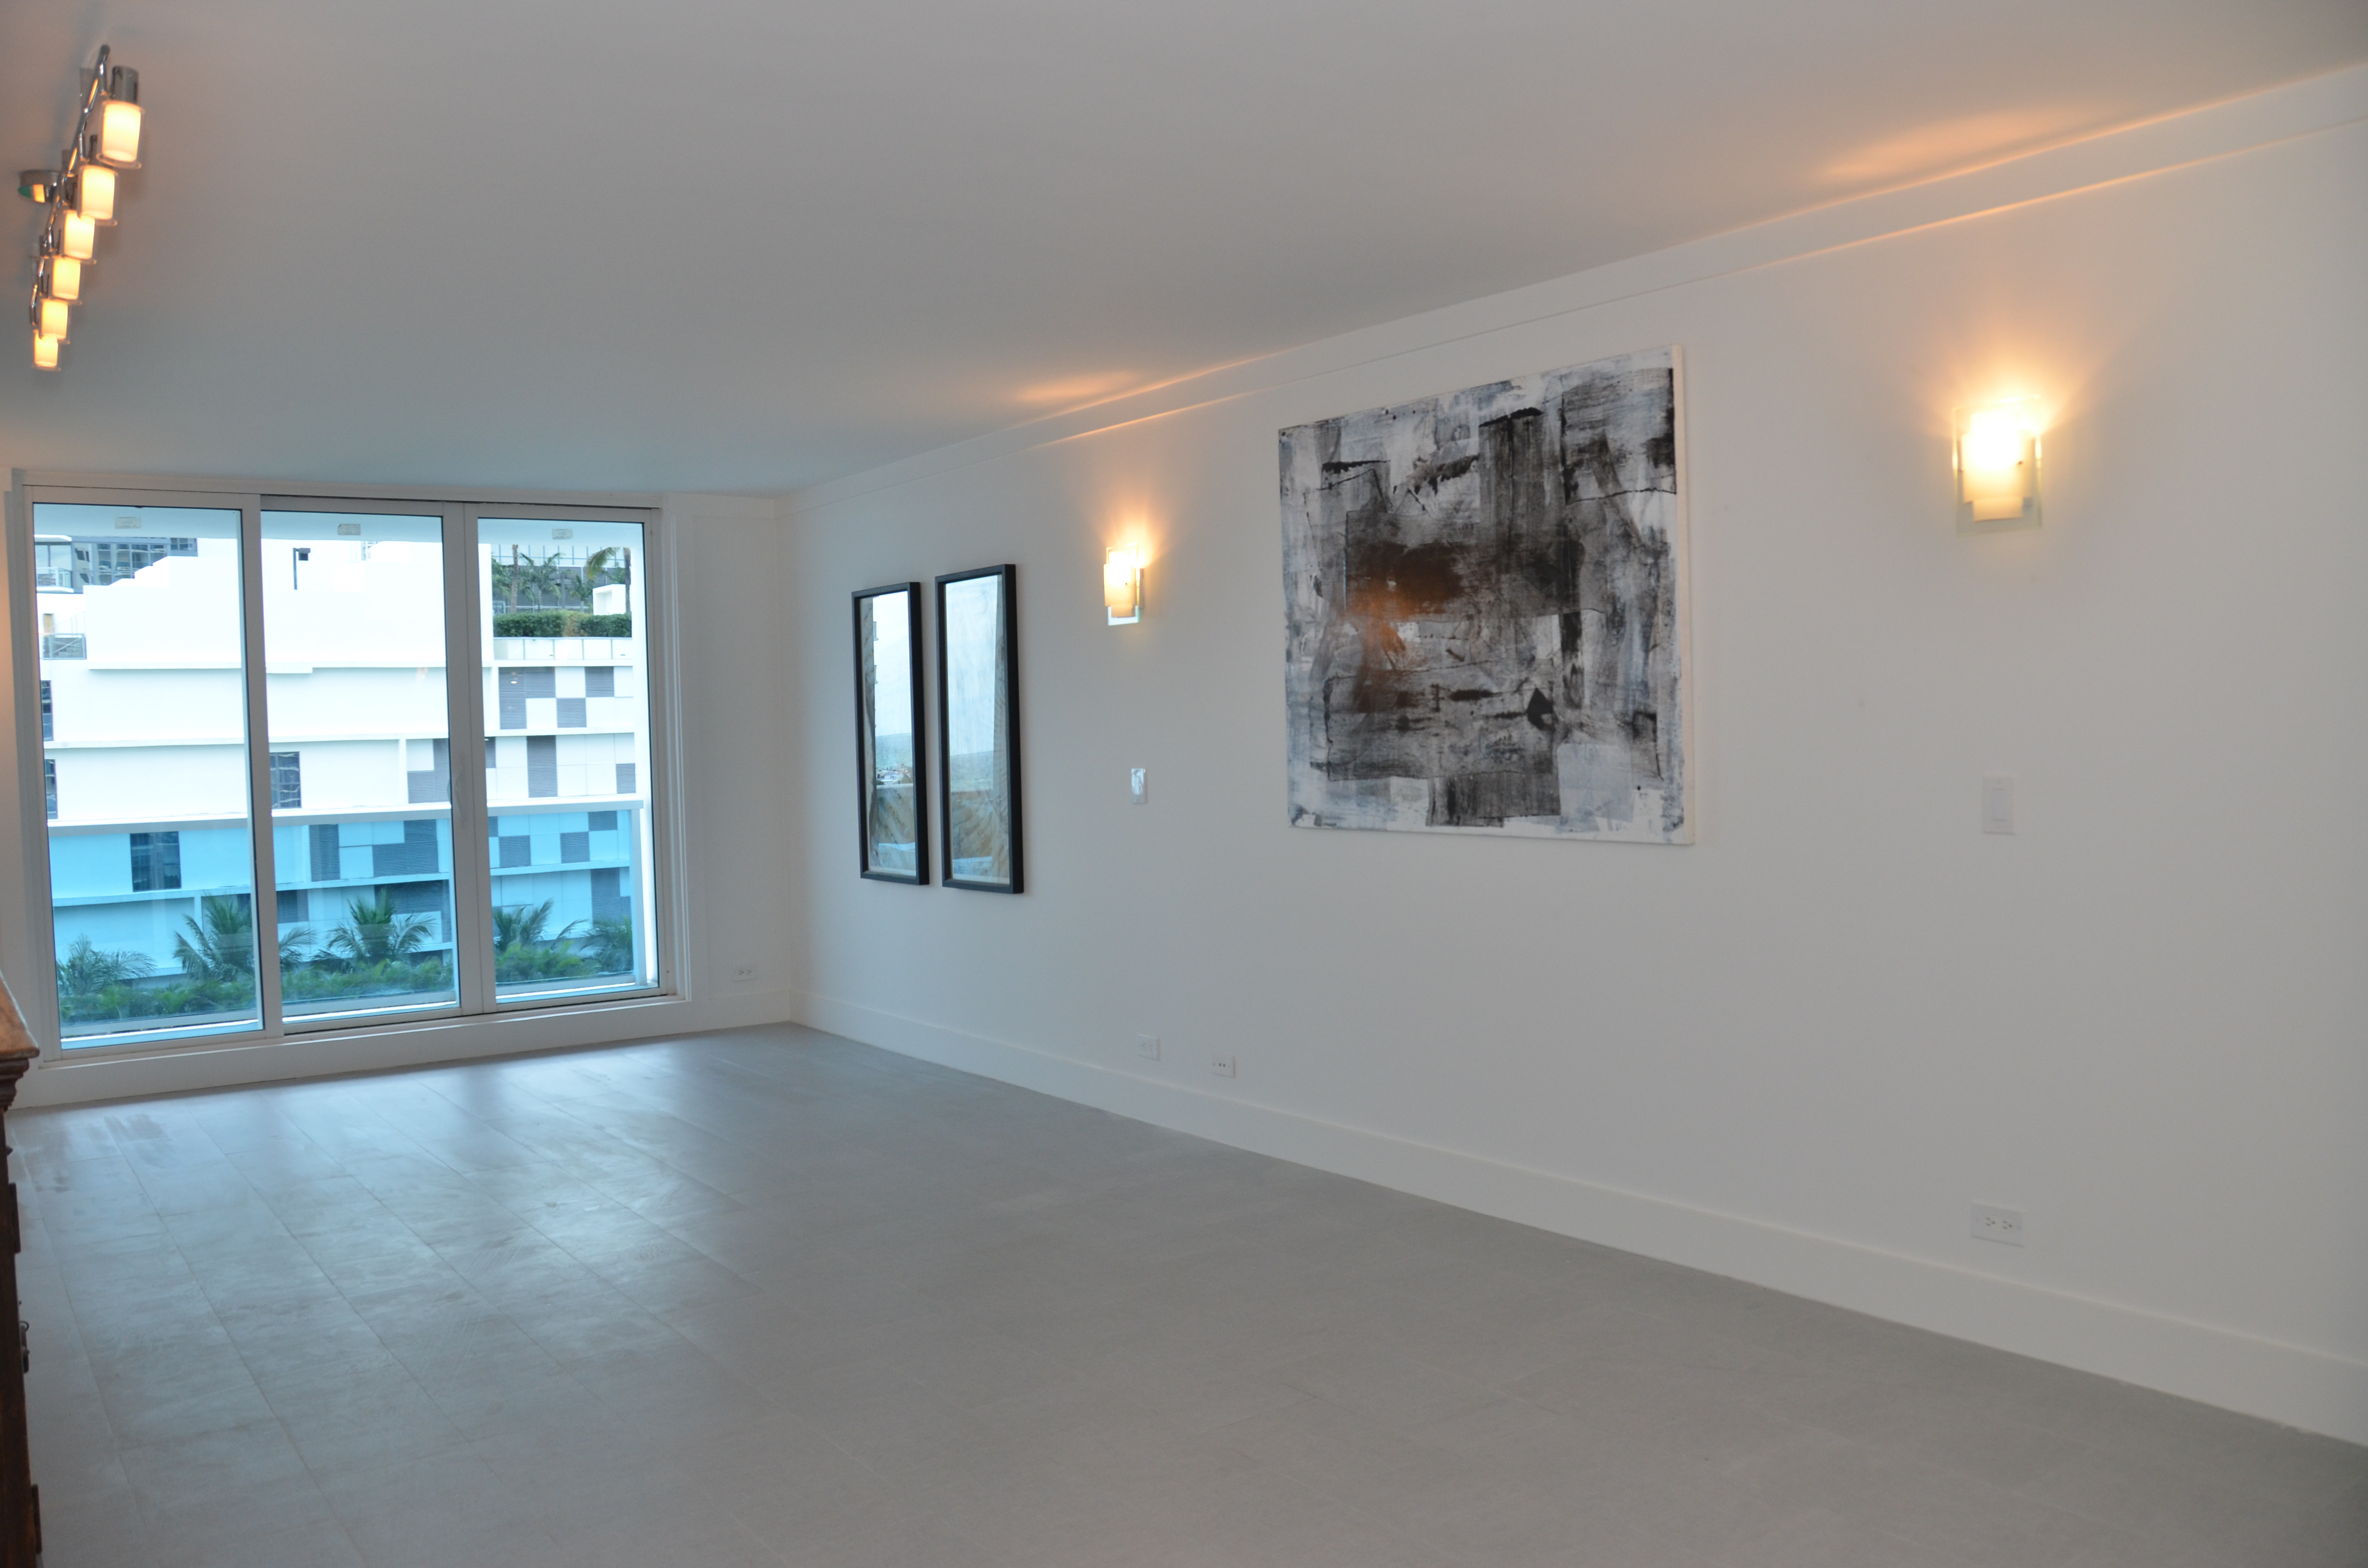 Condominium for Sale at 2301 Collins Ave #1415 2301 Collins Ave 1415 Miami Beach, Florida, 33139 United States